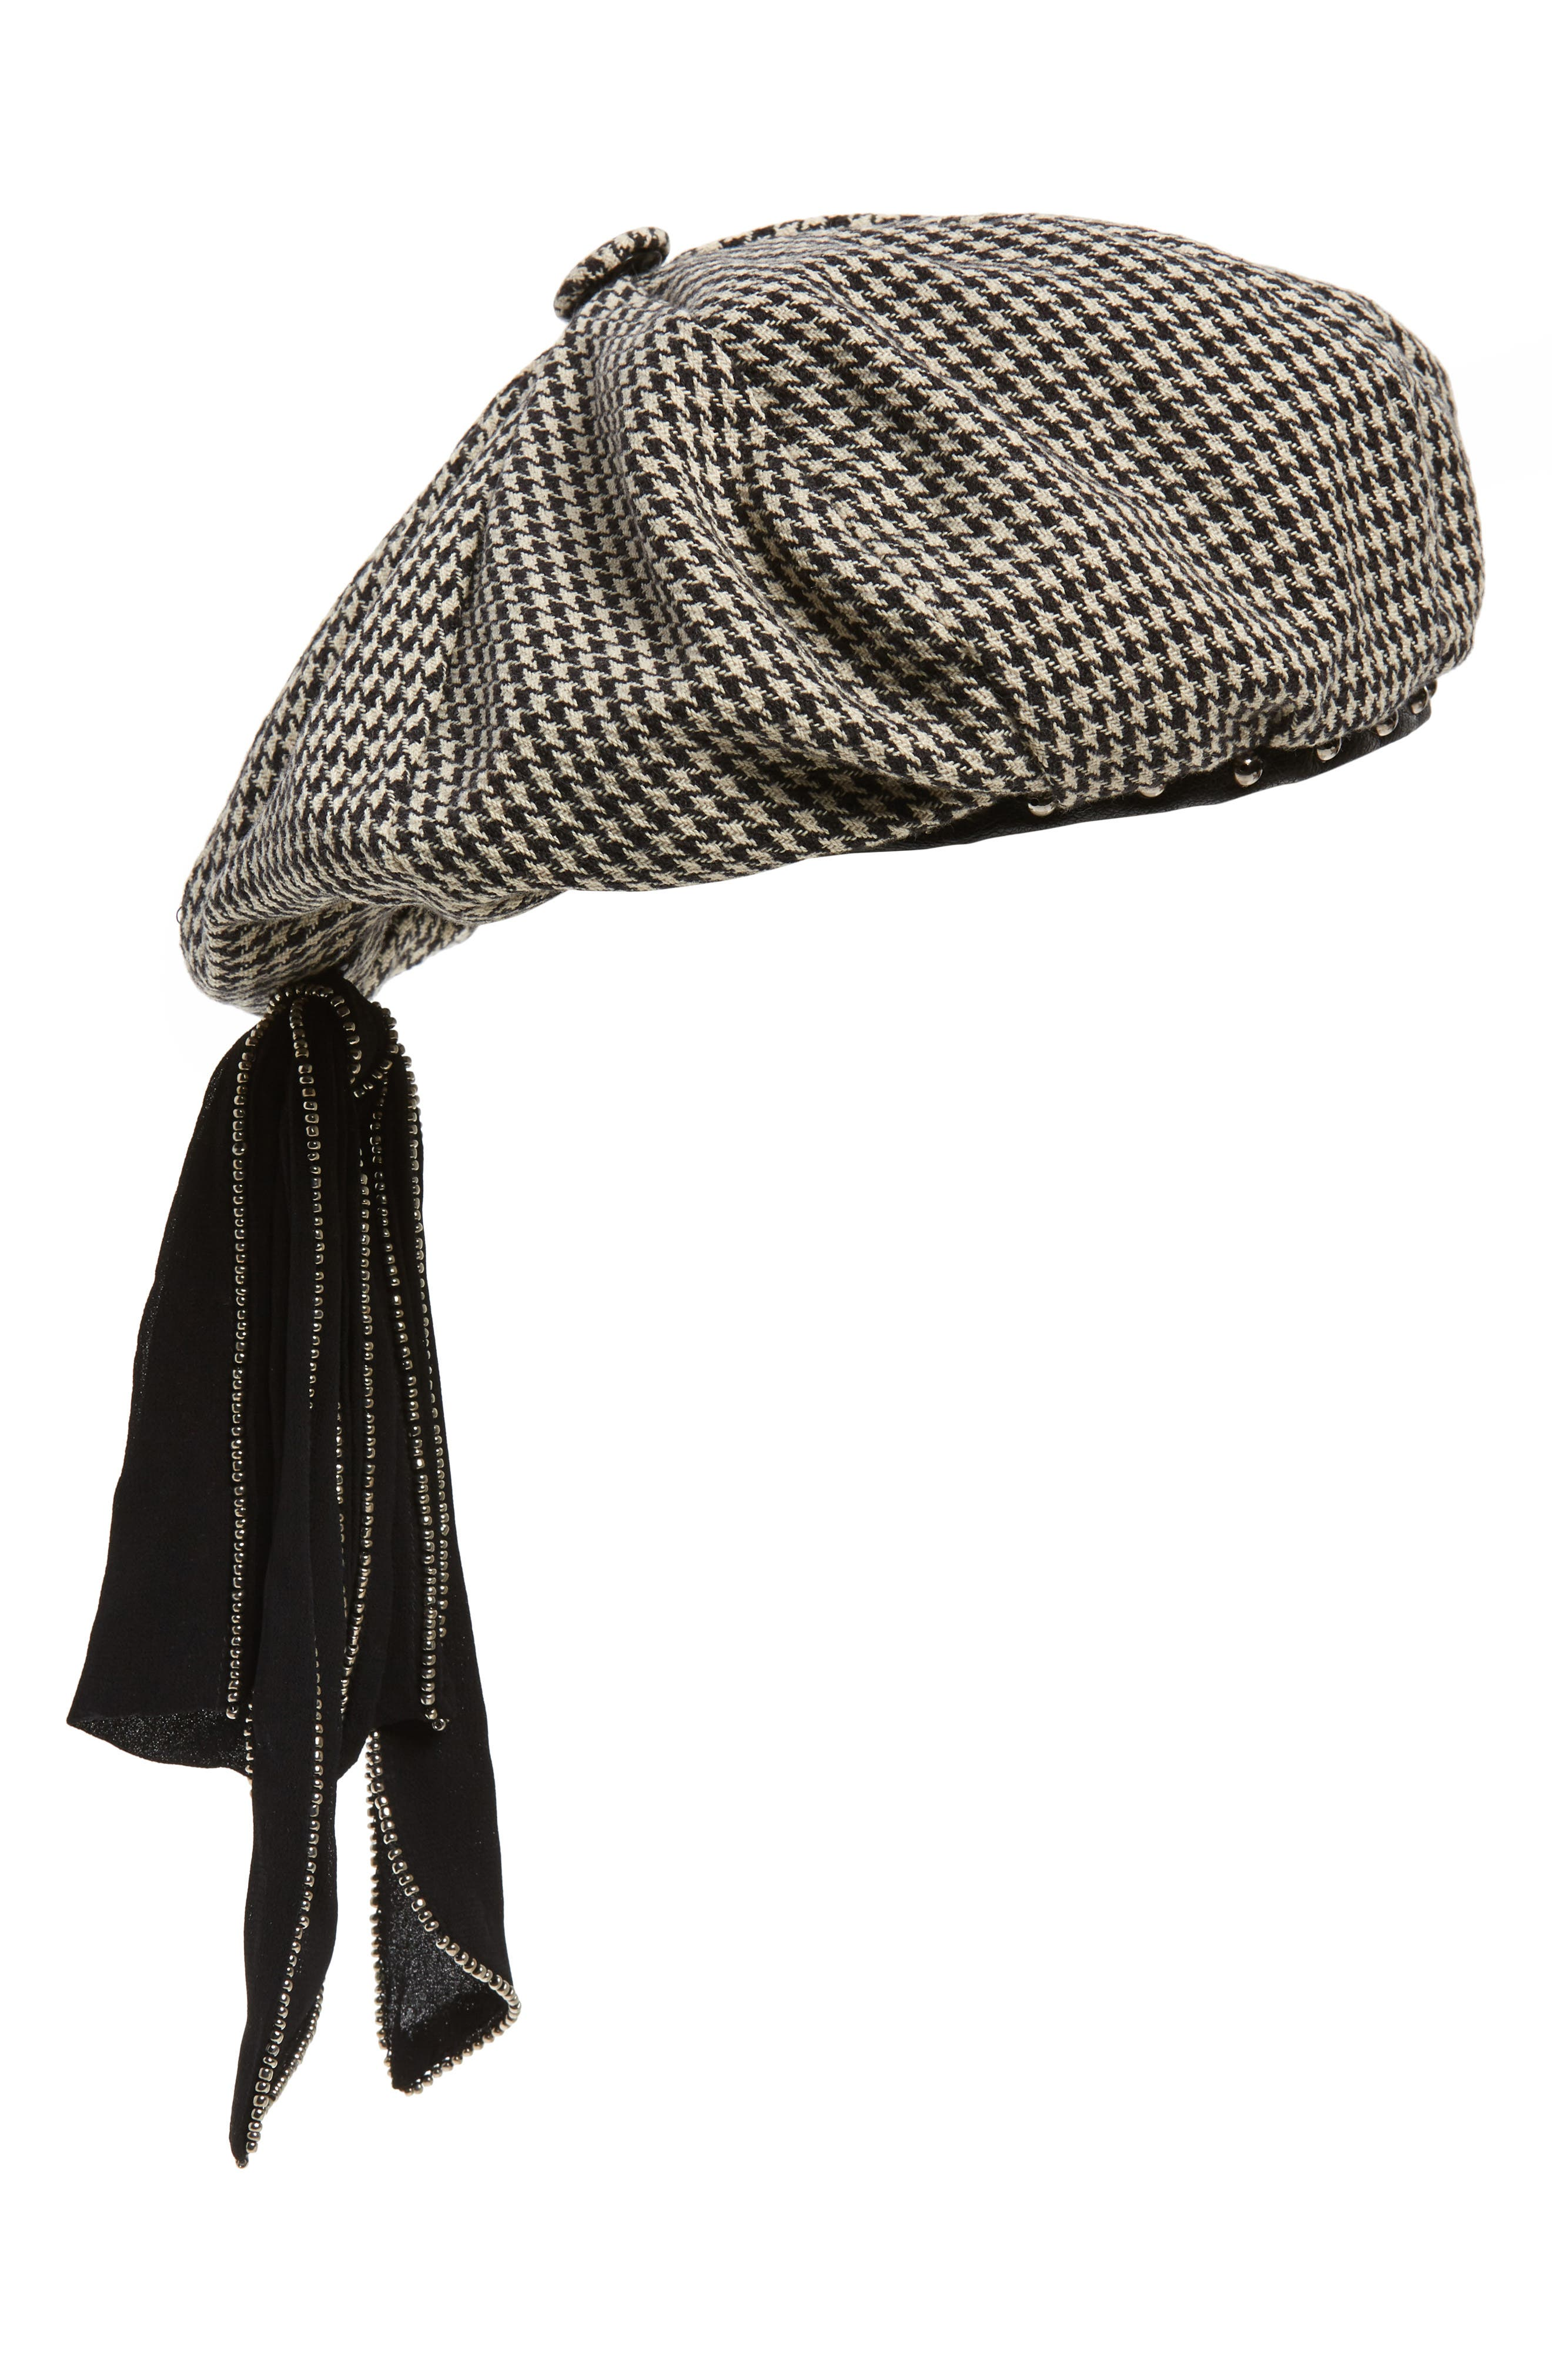 NEW FRIENDS COLONY Houndstooth Studded Beret - Black in Ivory/ Black Houndstooth